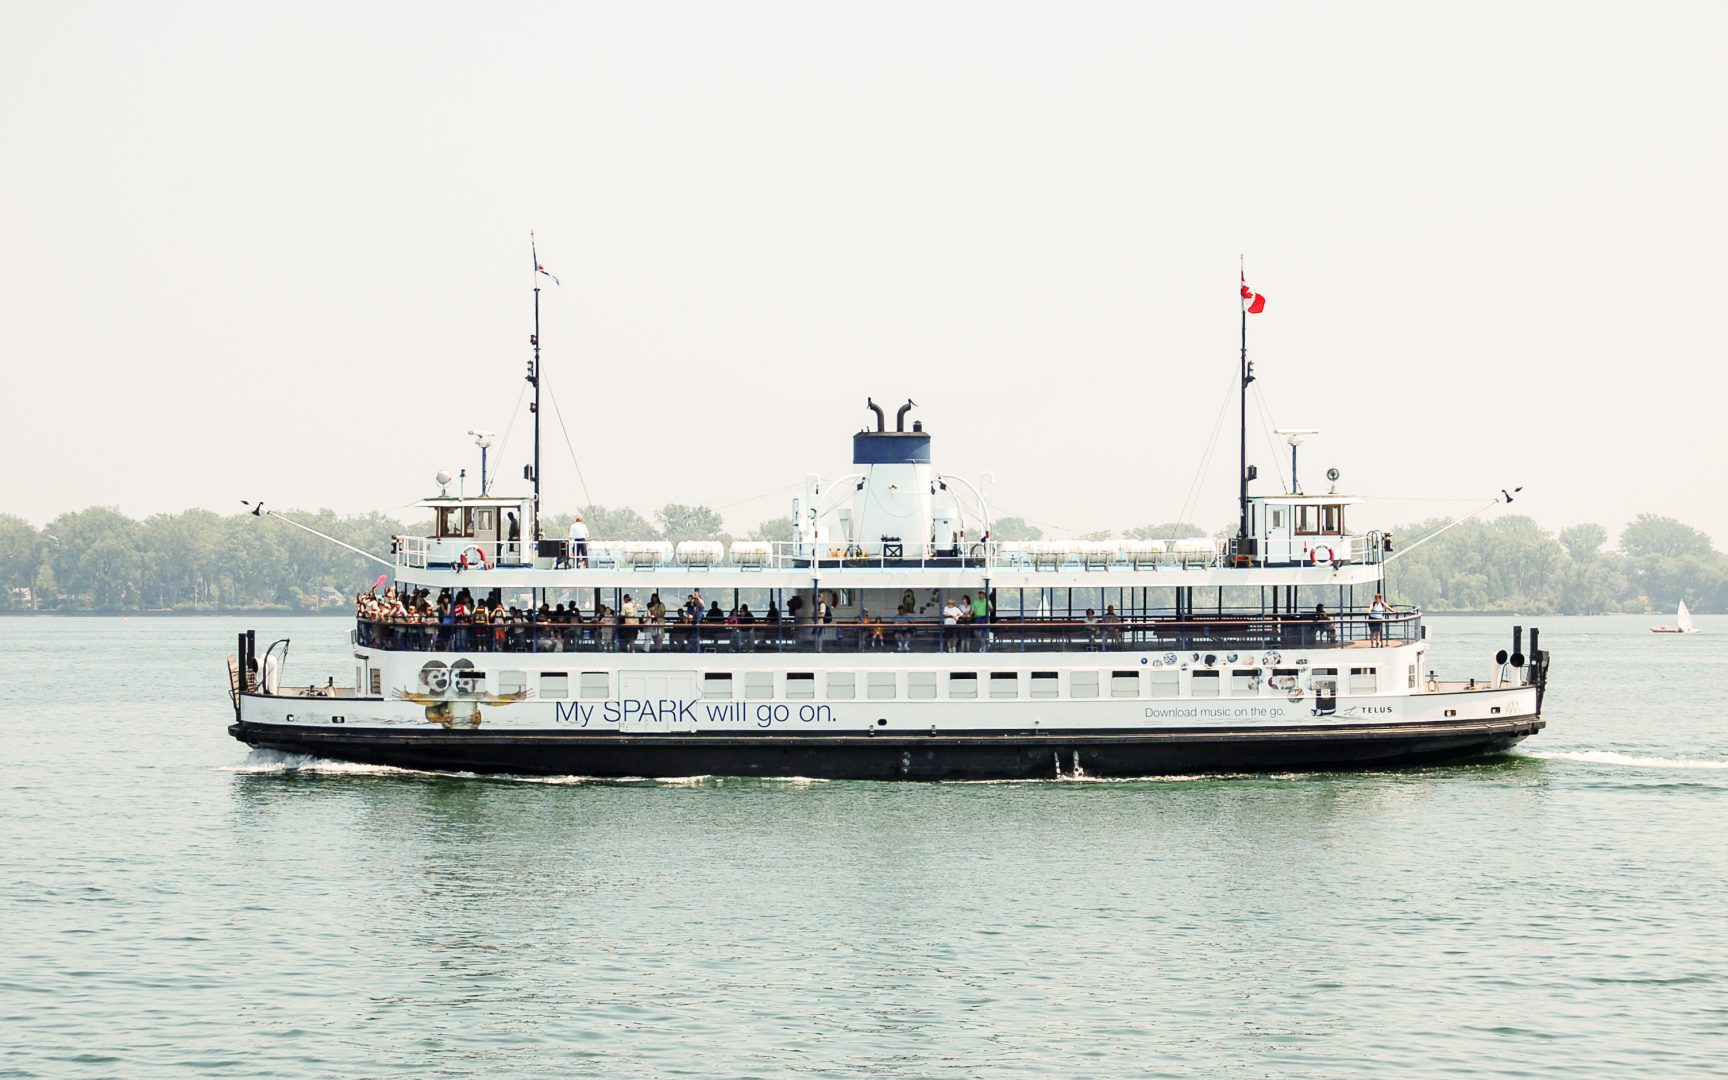 A Ferry in Toronto Harbour